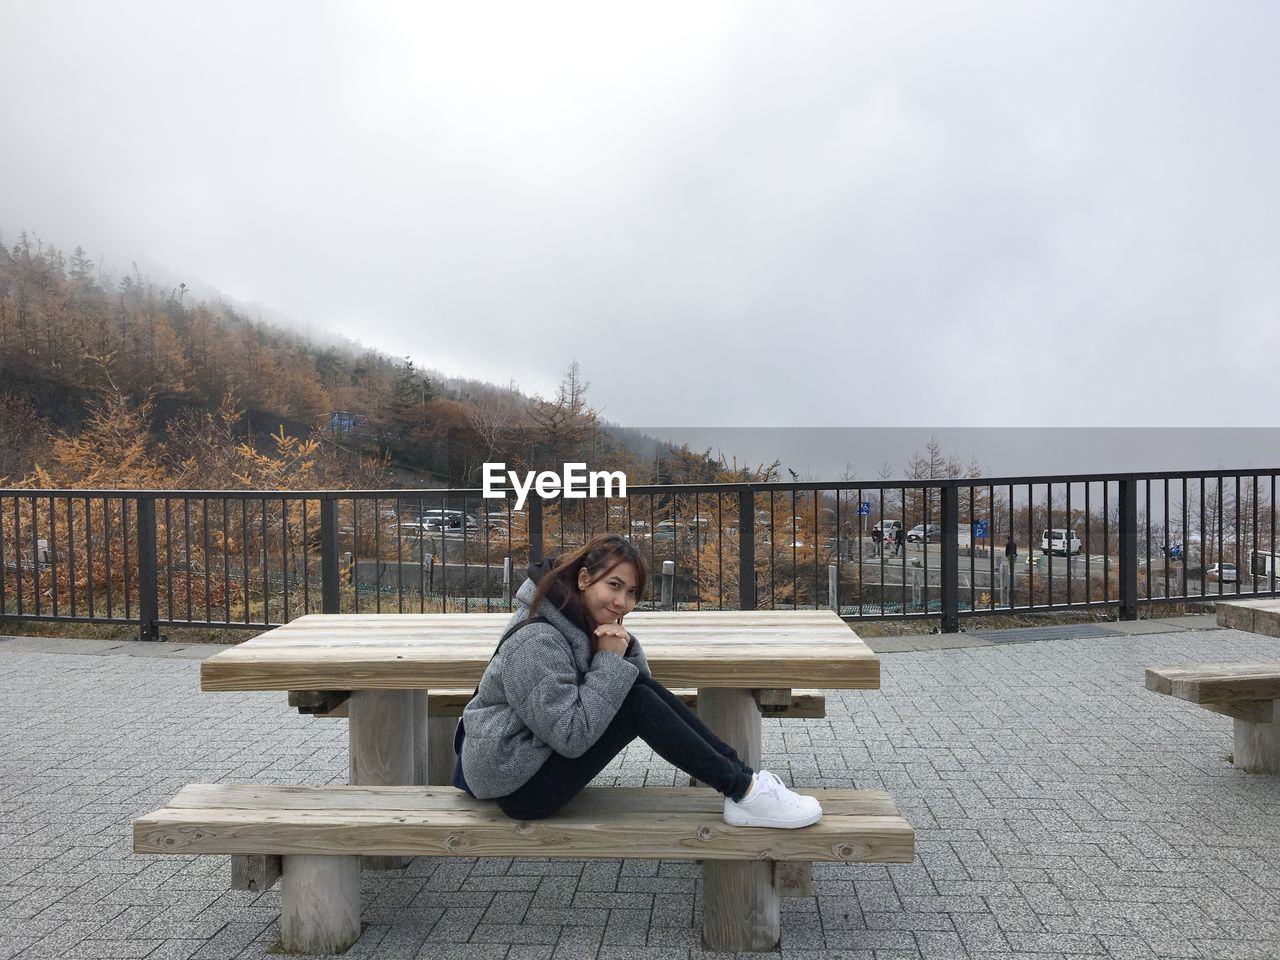 Portrait of woman sitting on bench against sky